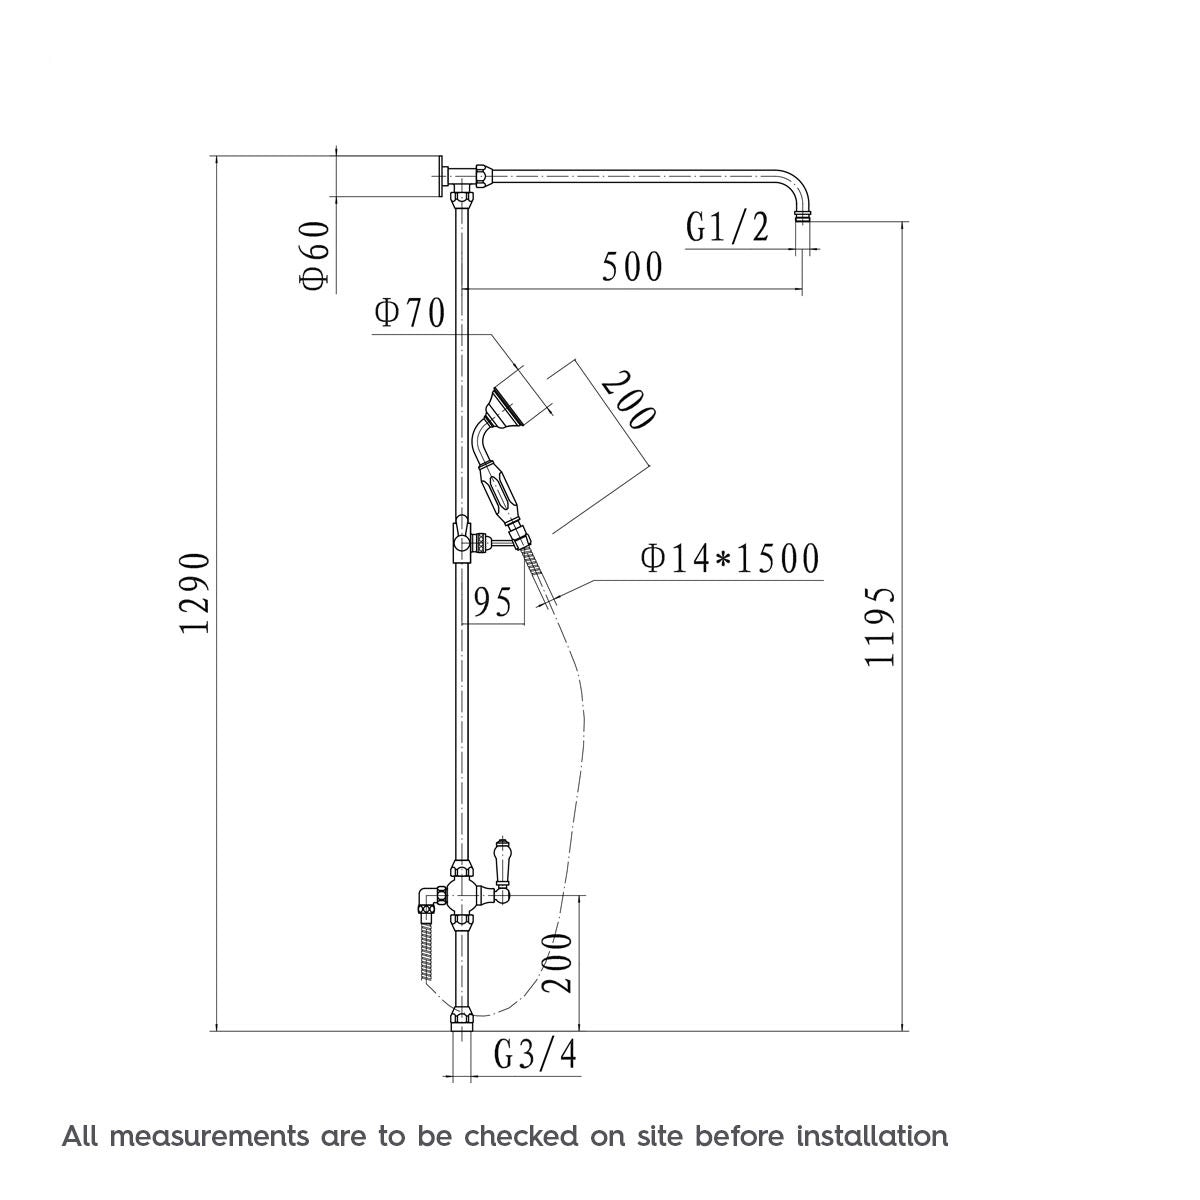 Dimensions for The Bath Co. Winchester dual valve shower bath system